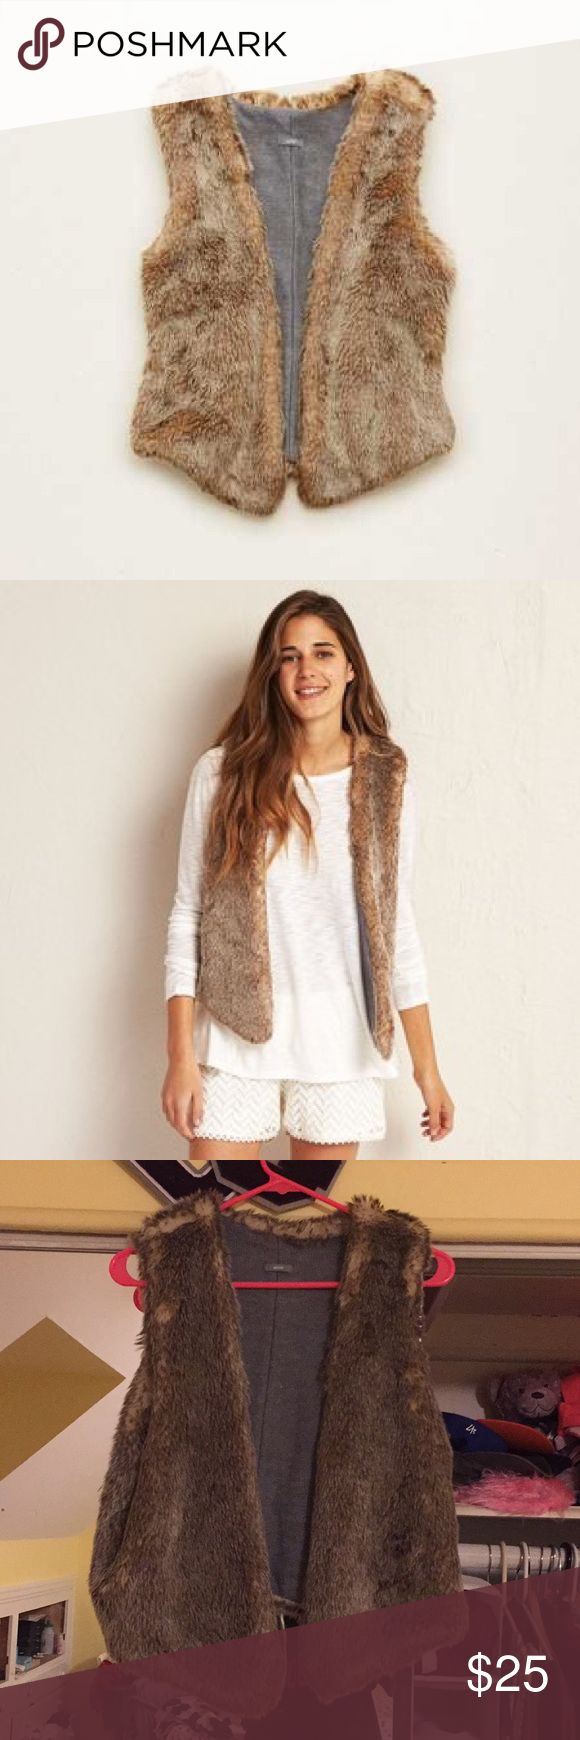 """Aerie Faux Fur Vest This vest from aerie is comfortable to throw over any shirt/blouse! It is super soft and comfortable. The best has only been worn a couple of times and is in great condition! For last two pictures to show size- I am 5'7"""" 135 lbs and this vest has fit me perfectly since I was 5'5"""" and slimer, and still manages to fit! aerie Jackets & Coats Vests"""